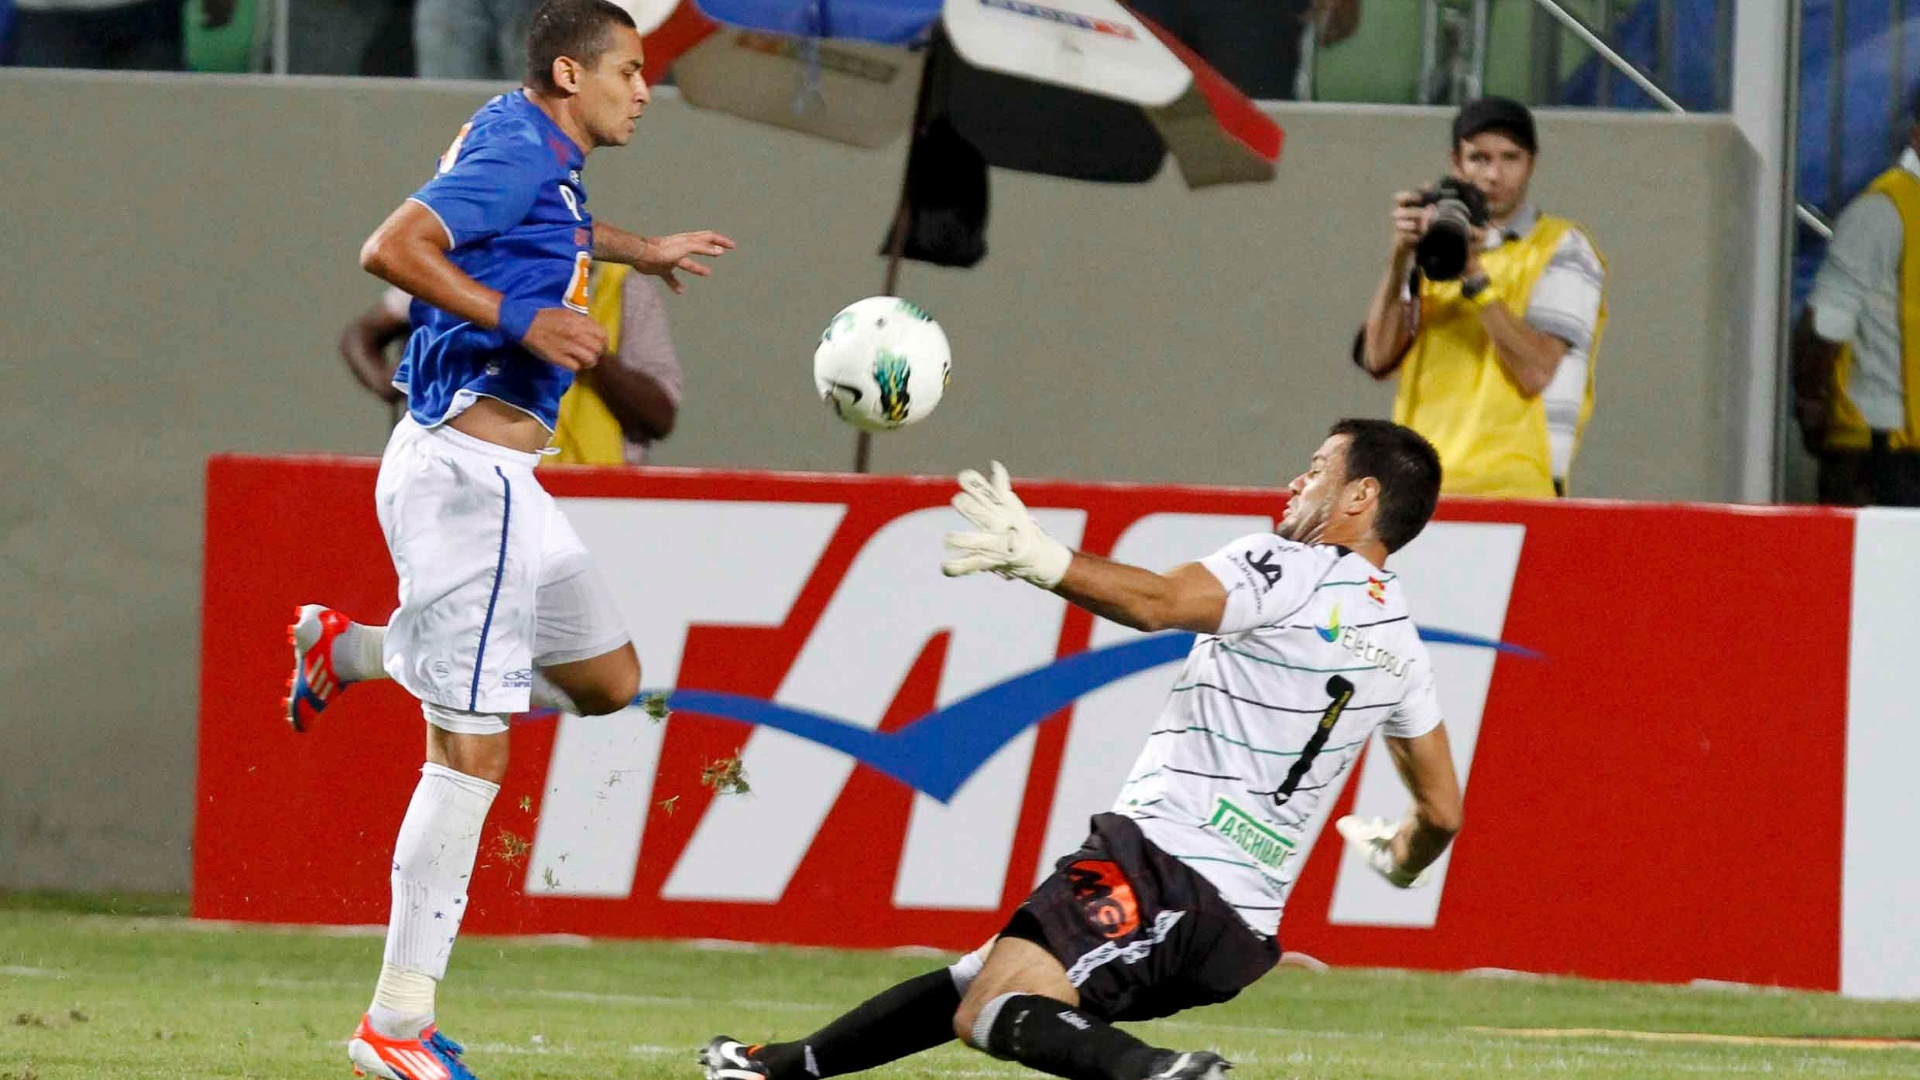 Wellington Paulista diante do goleiro Wilson, do Figueirense (16/6/2012)